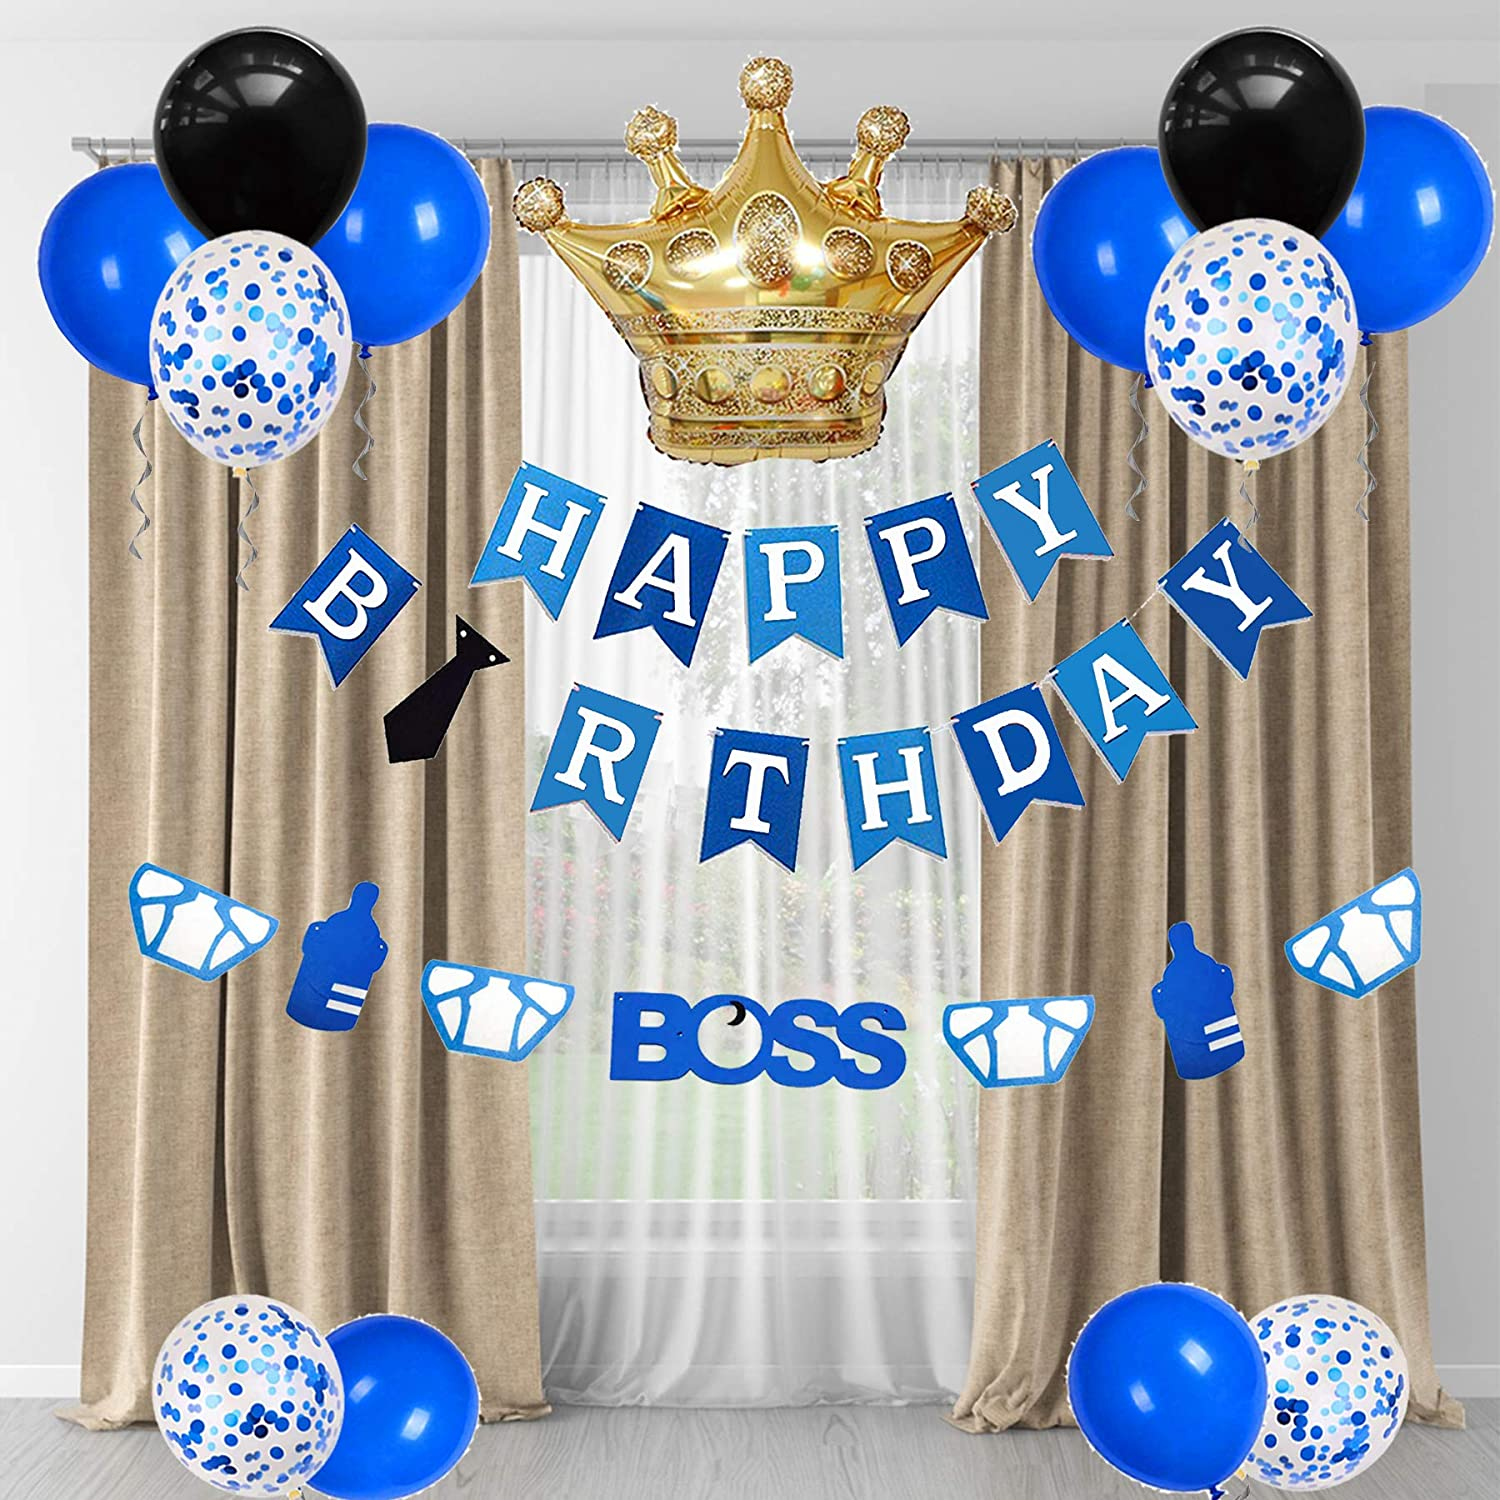 Boss Felt Garland Happy Birthday Banner Baby Boss Birthday Party Supplies Gold Crown Aluminum Foil Balloons Latex Balloons for Kids Birthday Party Decorations